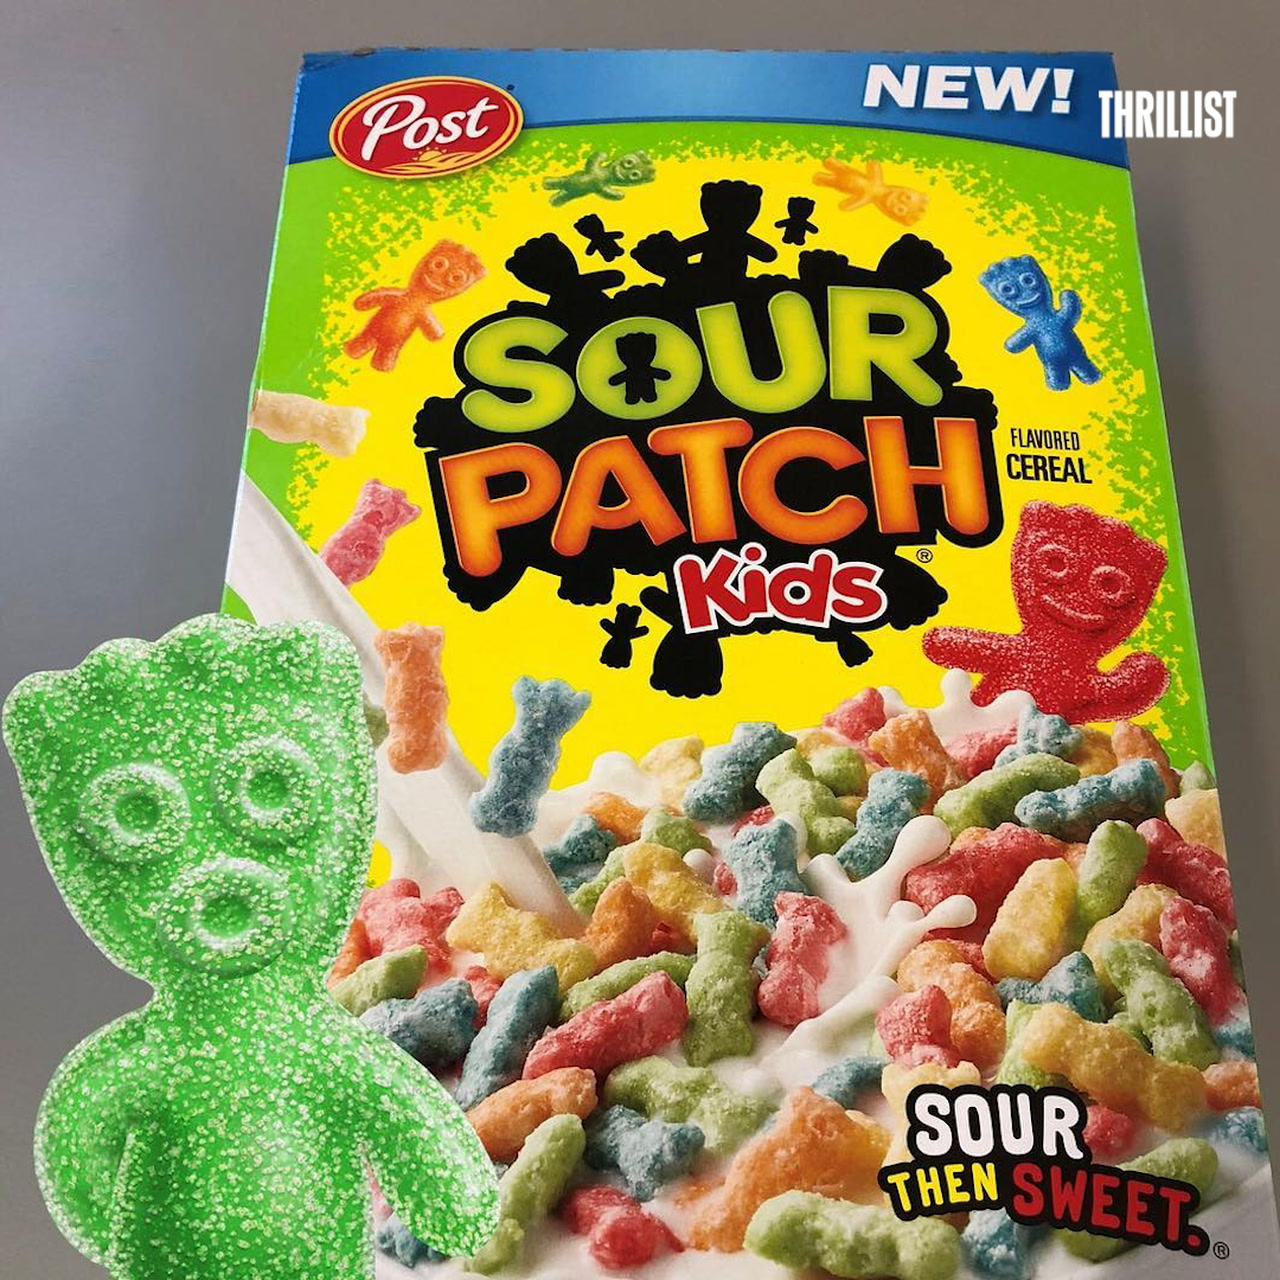 Sour Patch Kids is launching 'Singles Only' merchandise